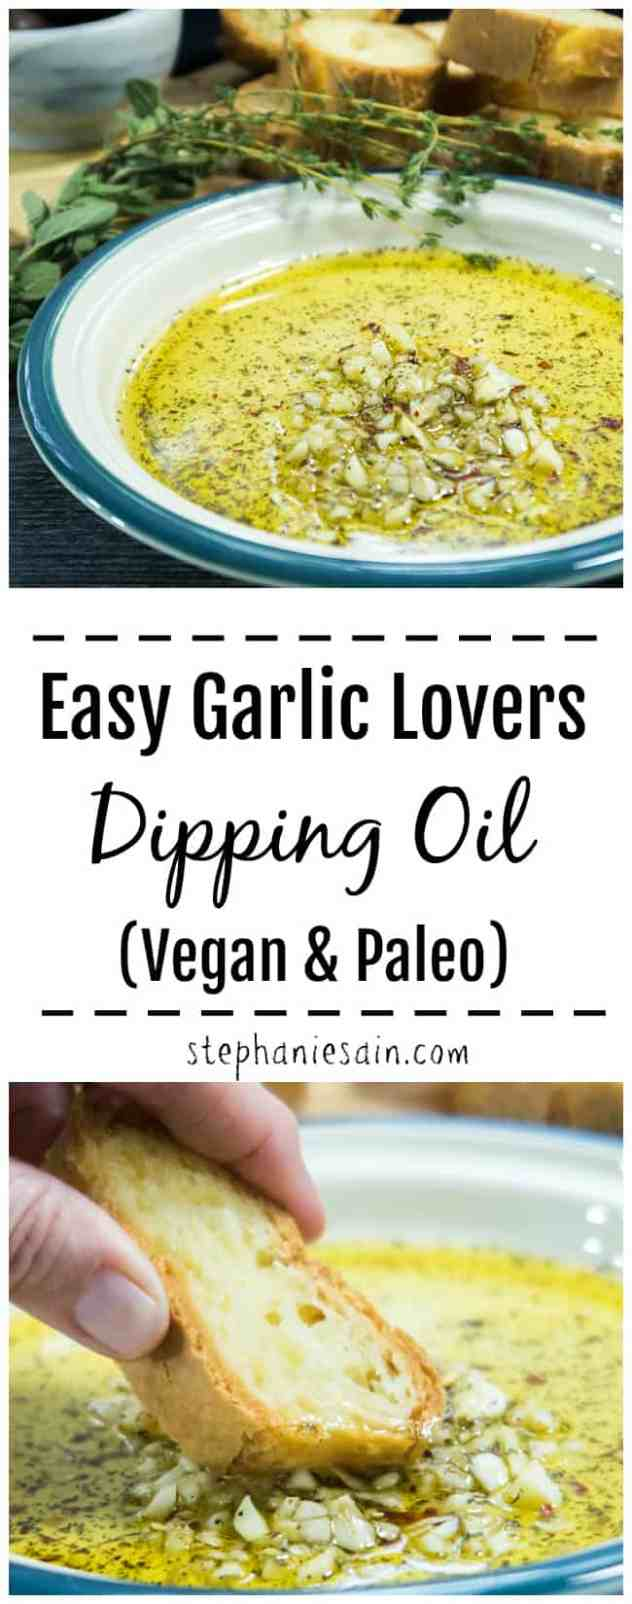 This Easy Garlic Lovers Dipping Oil is super Easy to make in less then 10 minutes. Perfect served with warm crusty bread, topped on pizza and so much more. Makes a super tasty, quick appetizer. Vegan, Paleo, & GF.